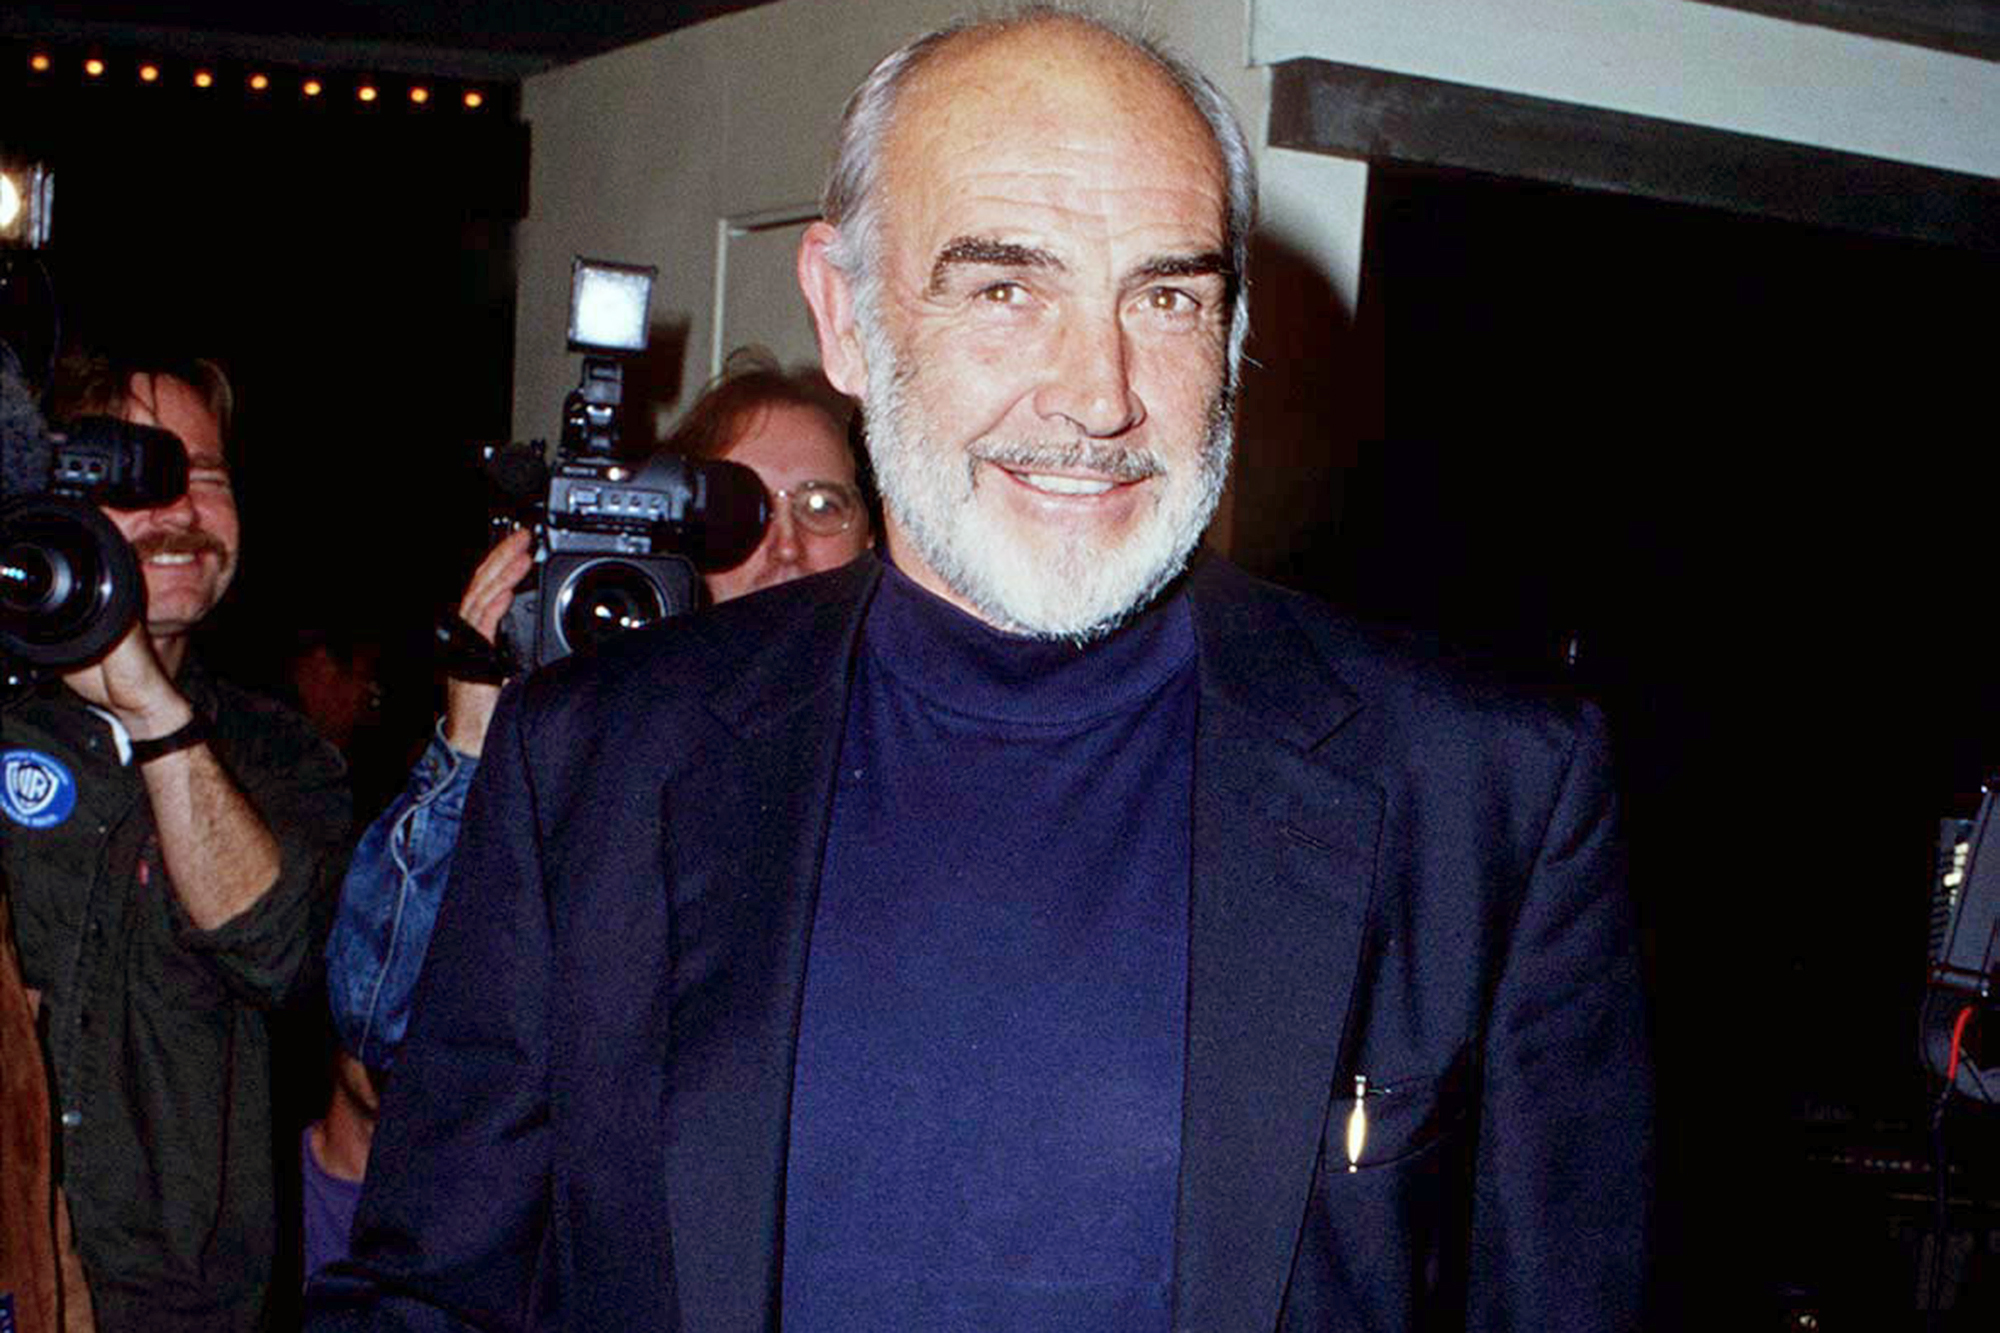 Ssean Connery